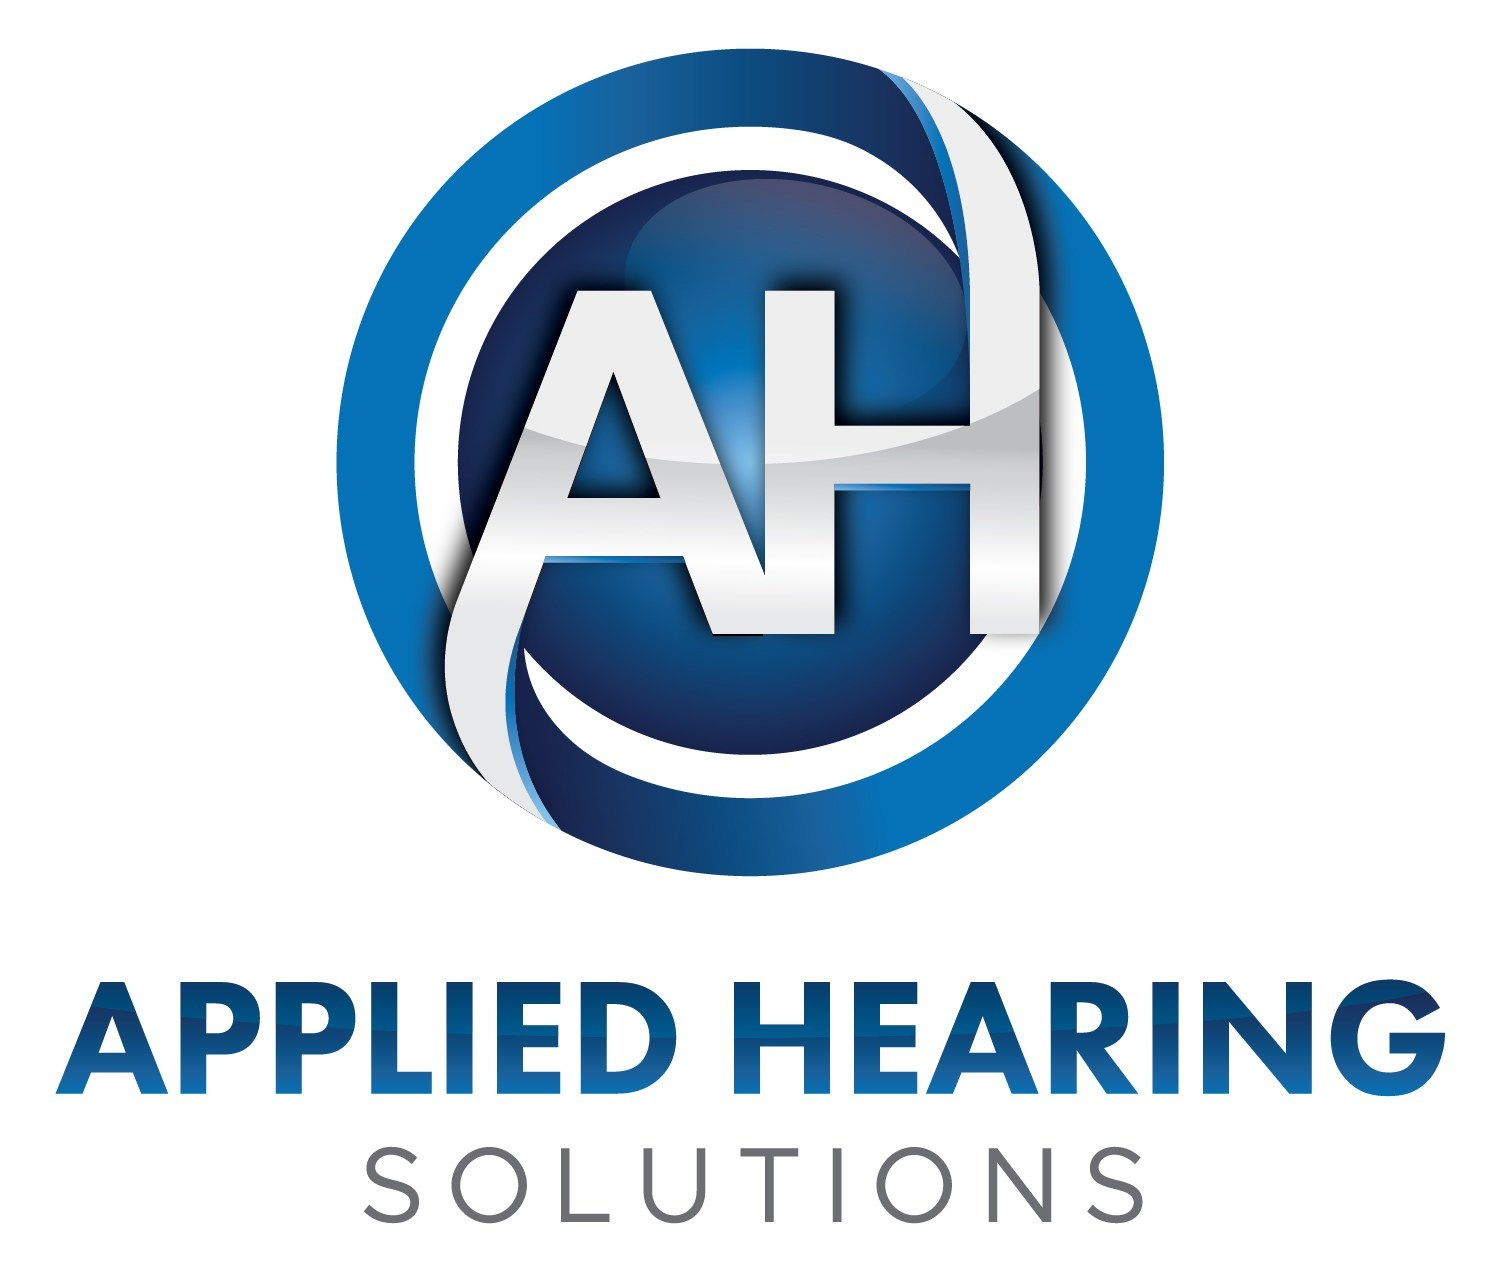 Bringing hearing solutions to Arizona